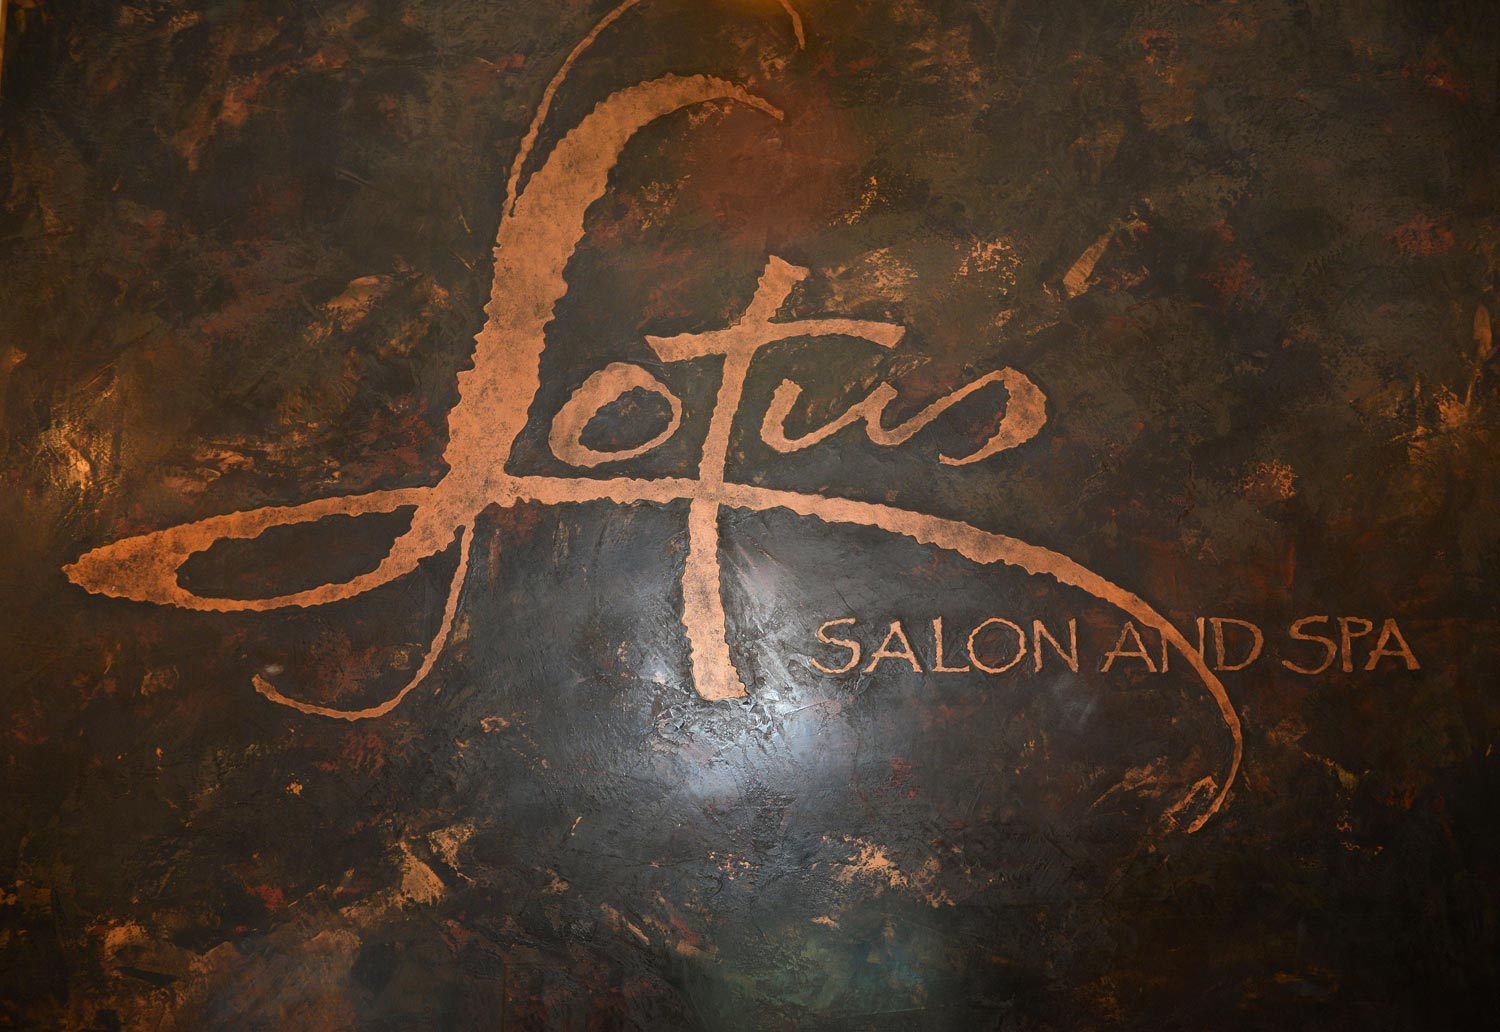 Lotus Salon & Spa is an Aveda salon that offers a variety of services to help you relieve stress and reveal your true beauty.